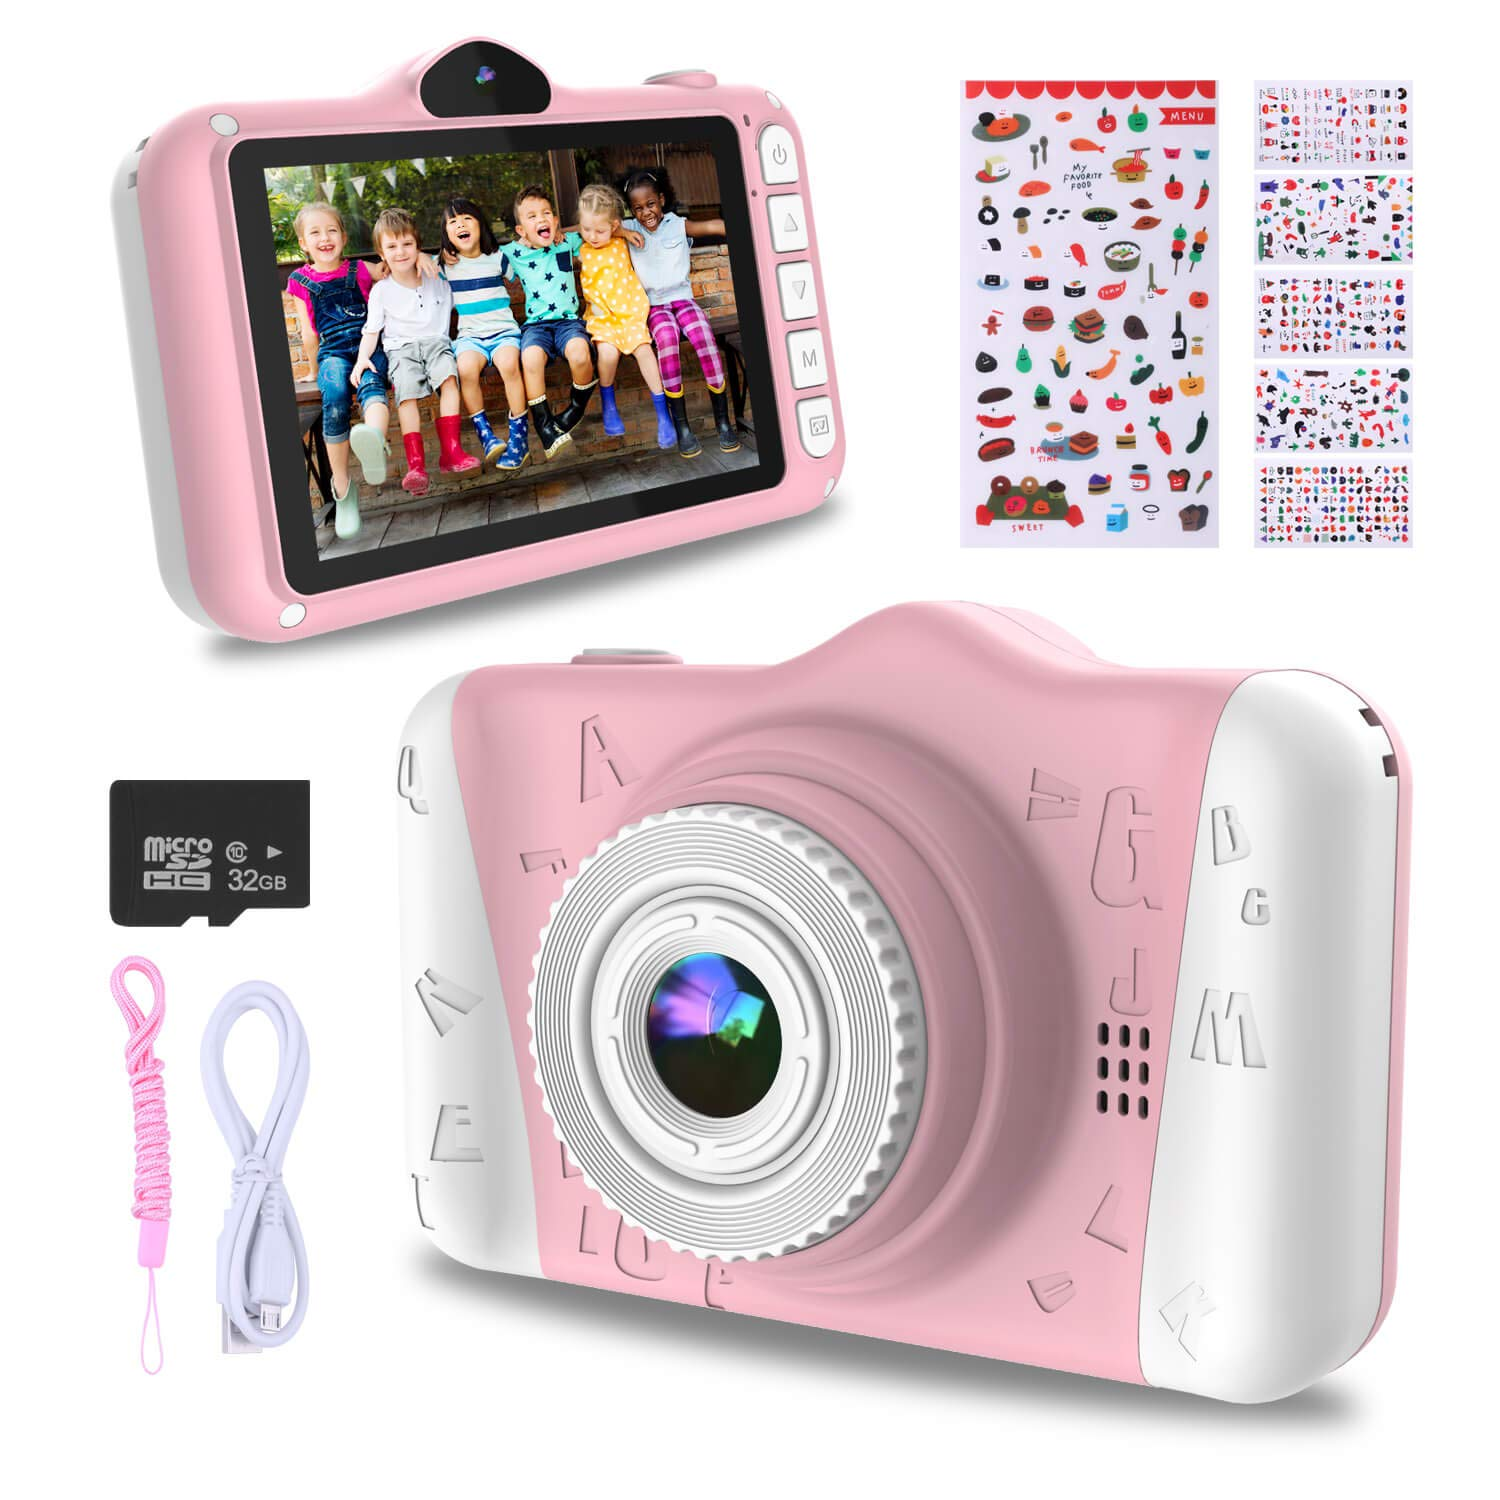 wowgo-kids-digital-camera-12mp-childrens-camera-with-large-screen-for-boys-and-girls-1080p-rechargeable-electronic-camera-with-32gb-tf-card